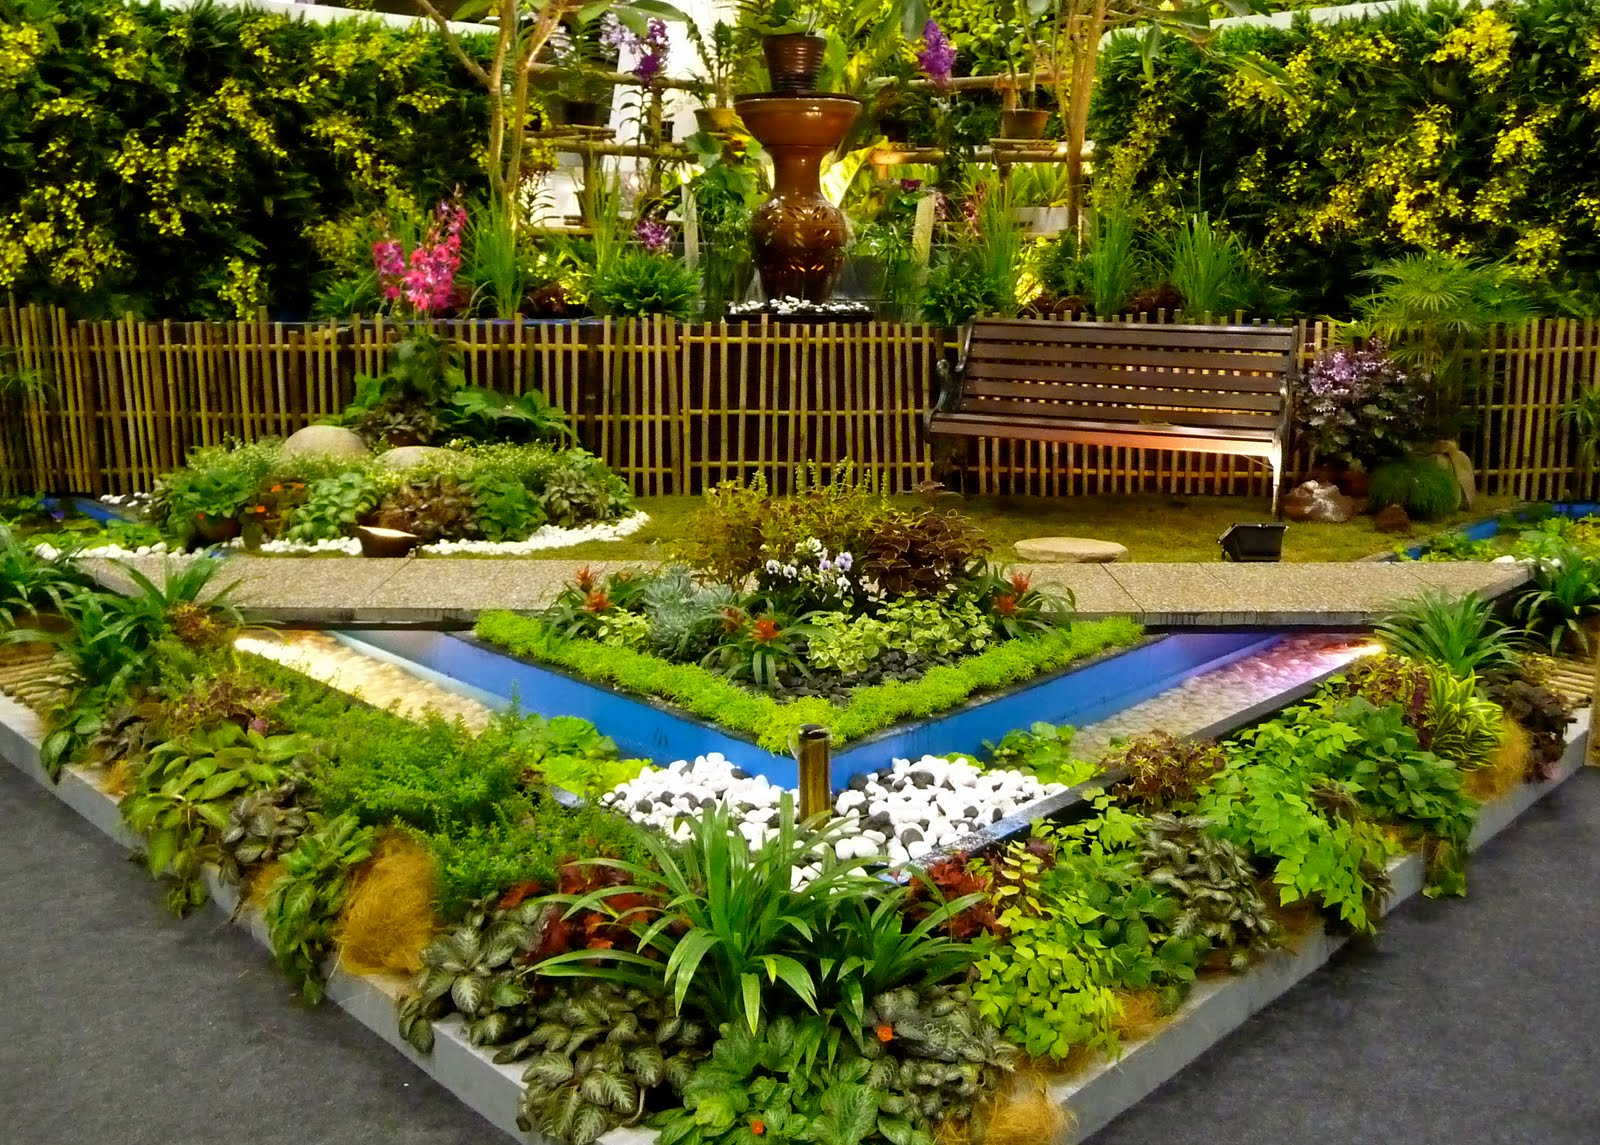 Good home ideas asia 39 s best garden and flower show returns for Home garden ideas